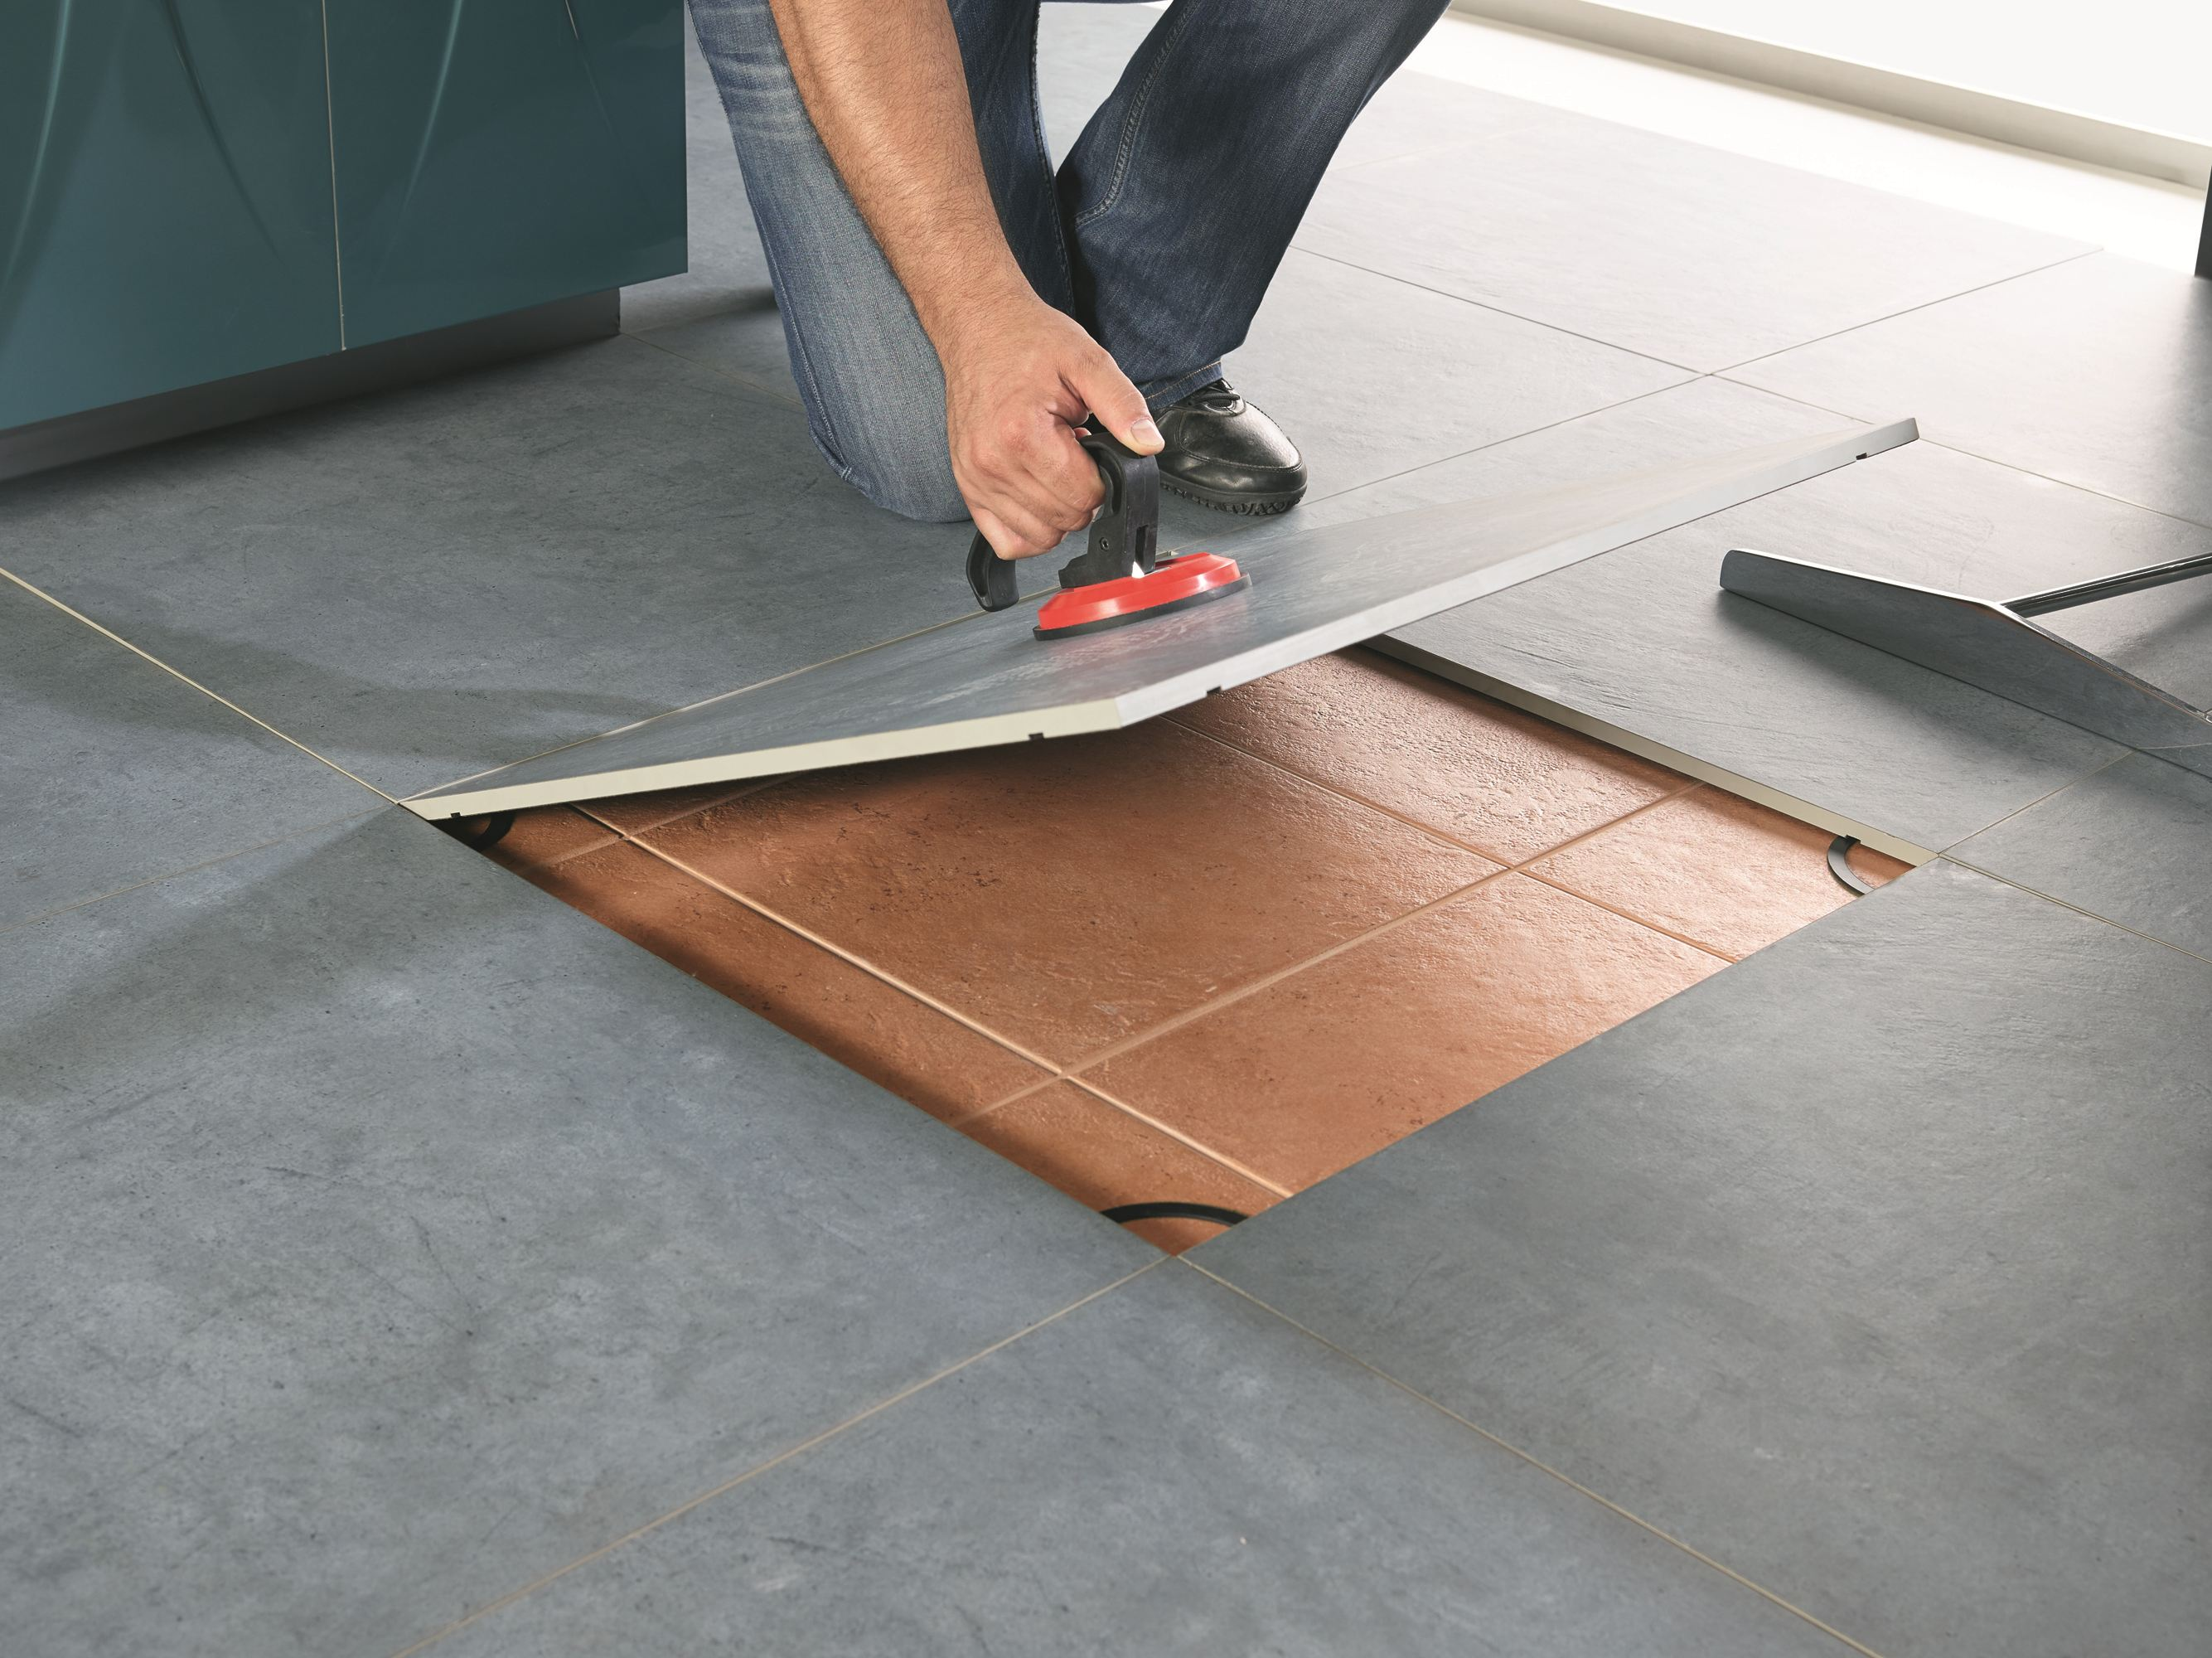 Carrelage adhesif sol for Carrelage pour sol garage